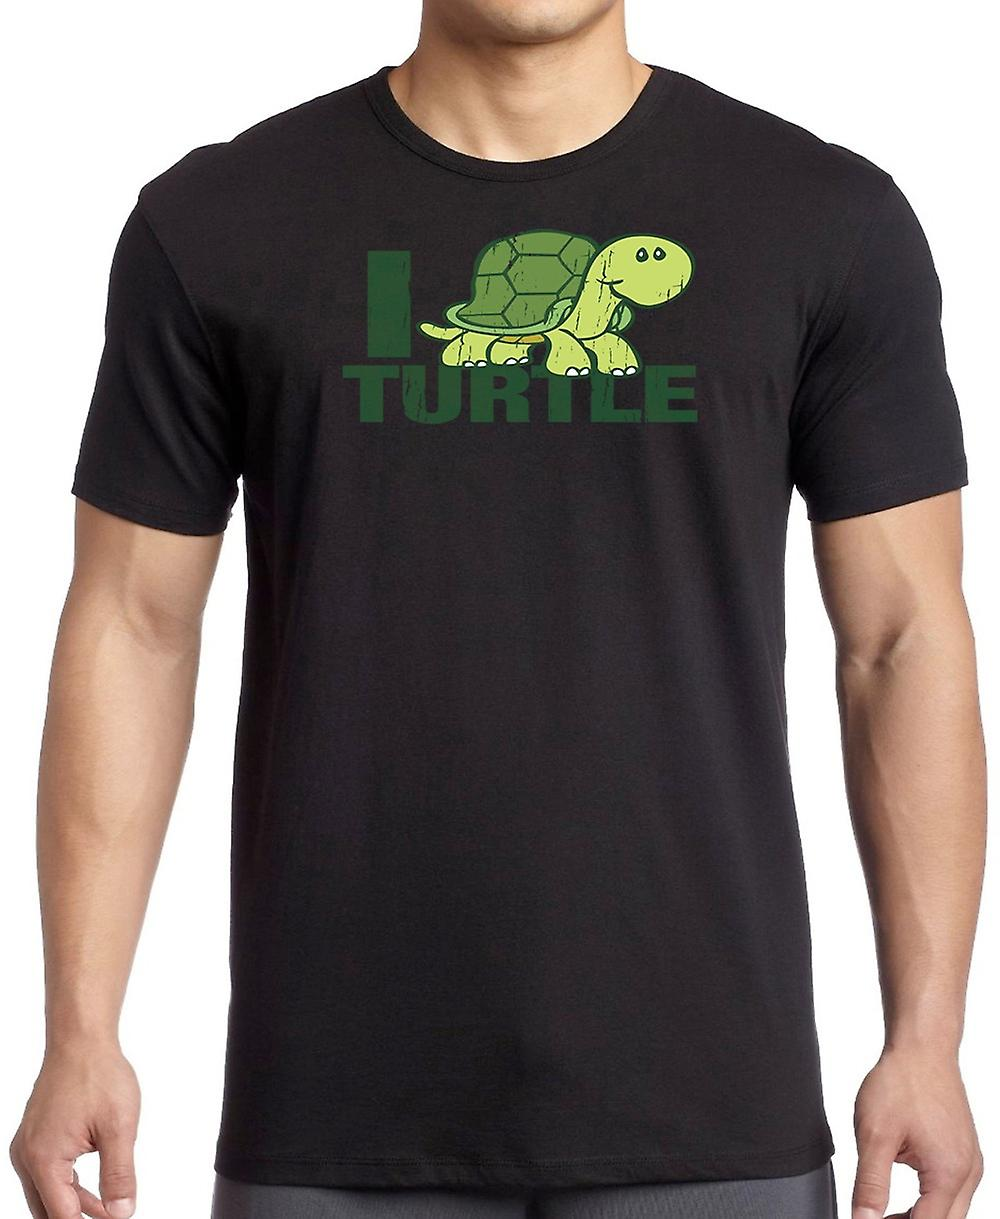 Je aime Tortue - Cool T-shirt